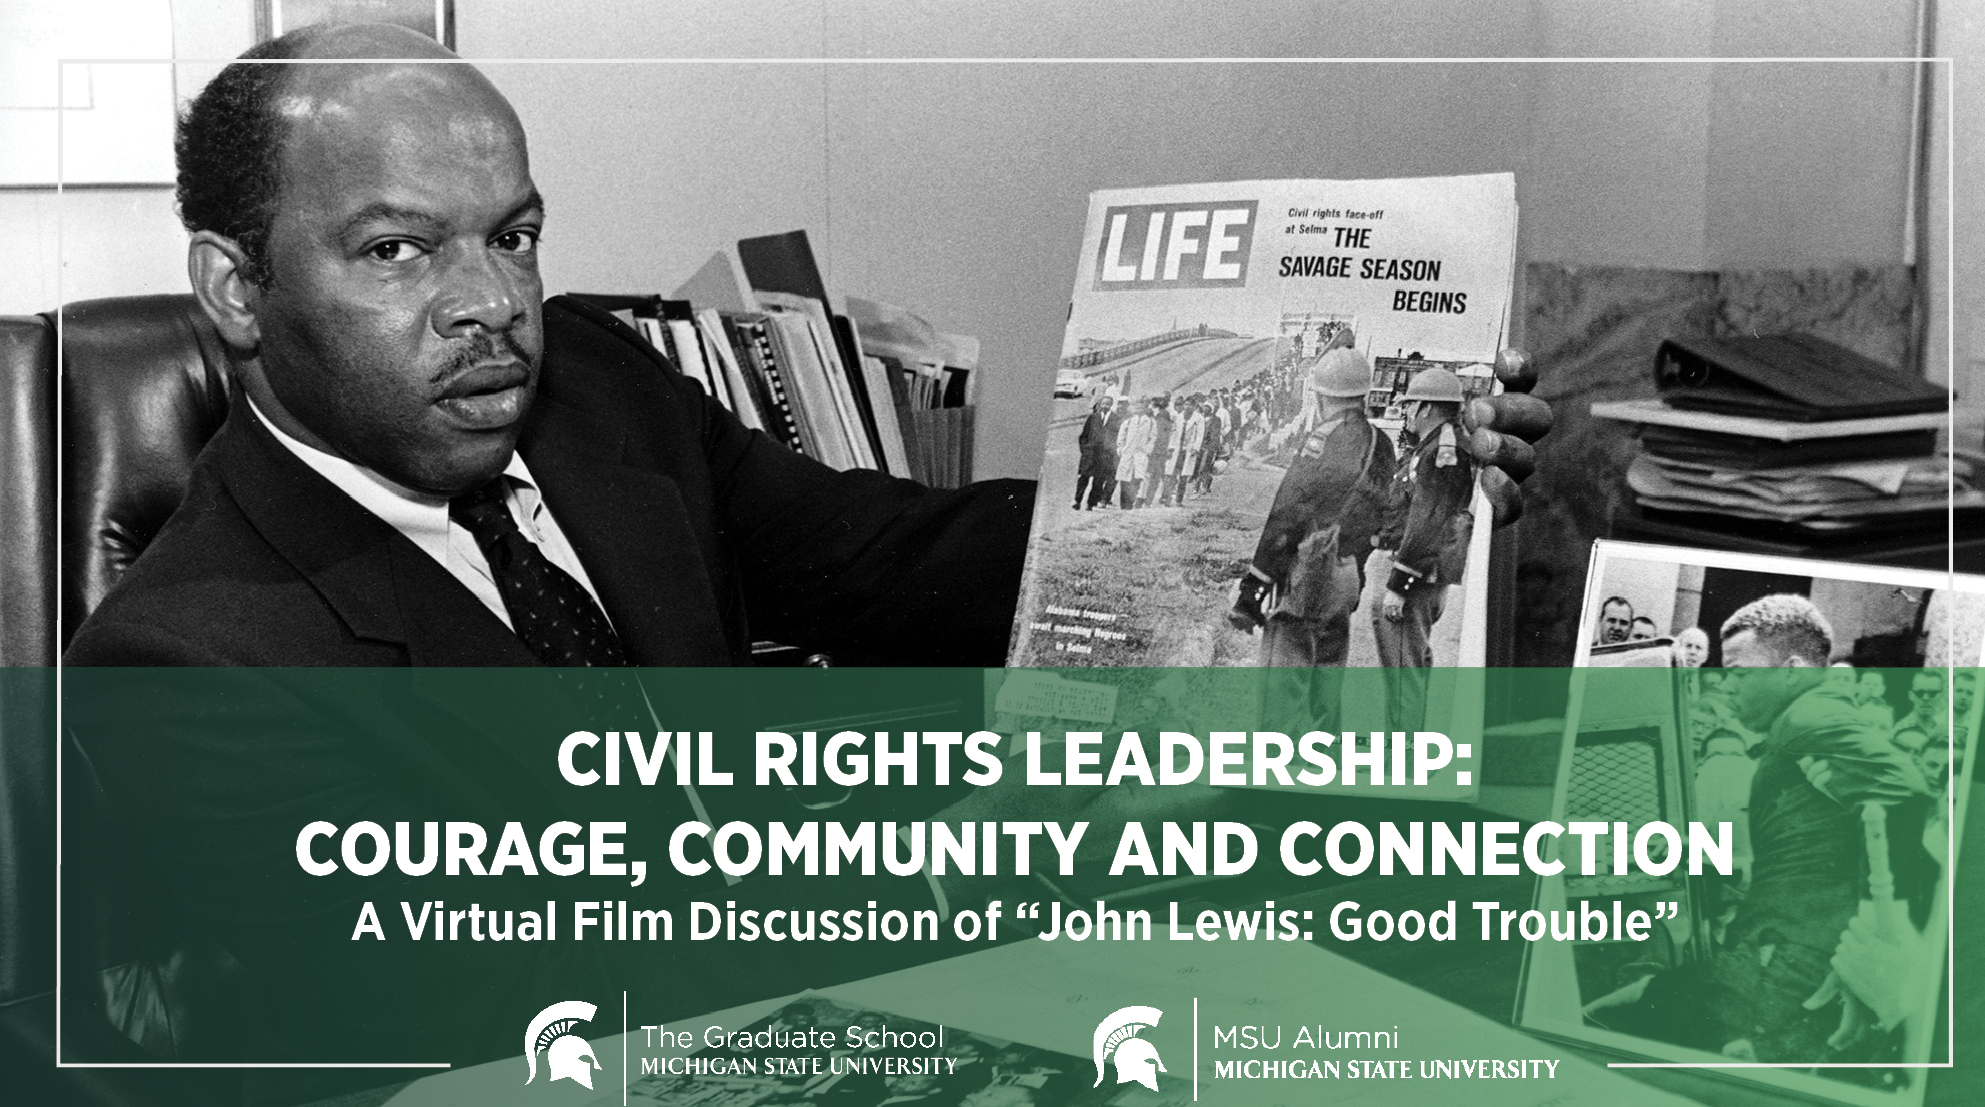 livestream cover image for Civil Rights Leadership: Courage, Community and Connection